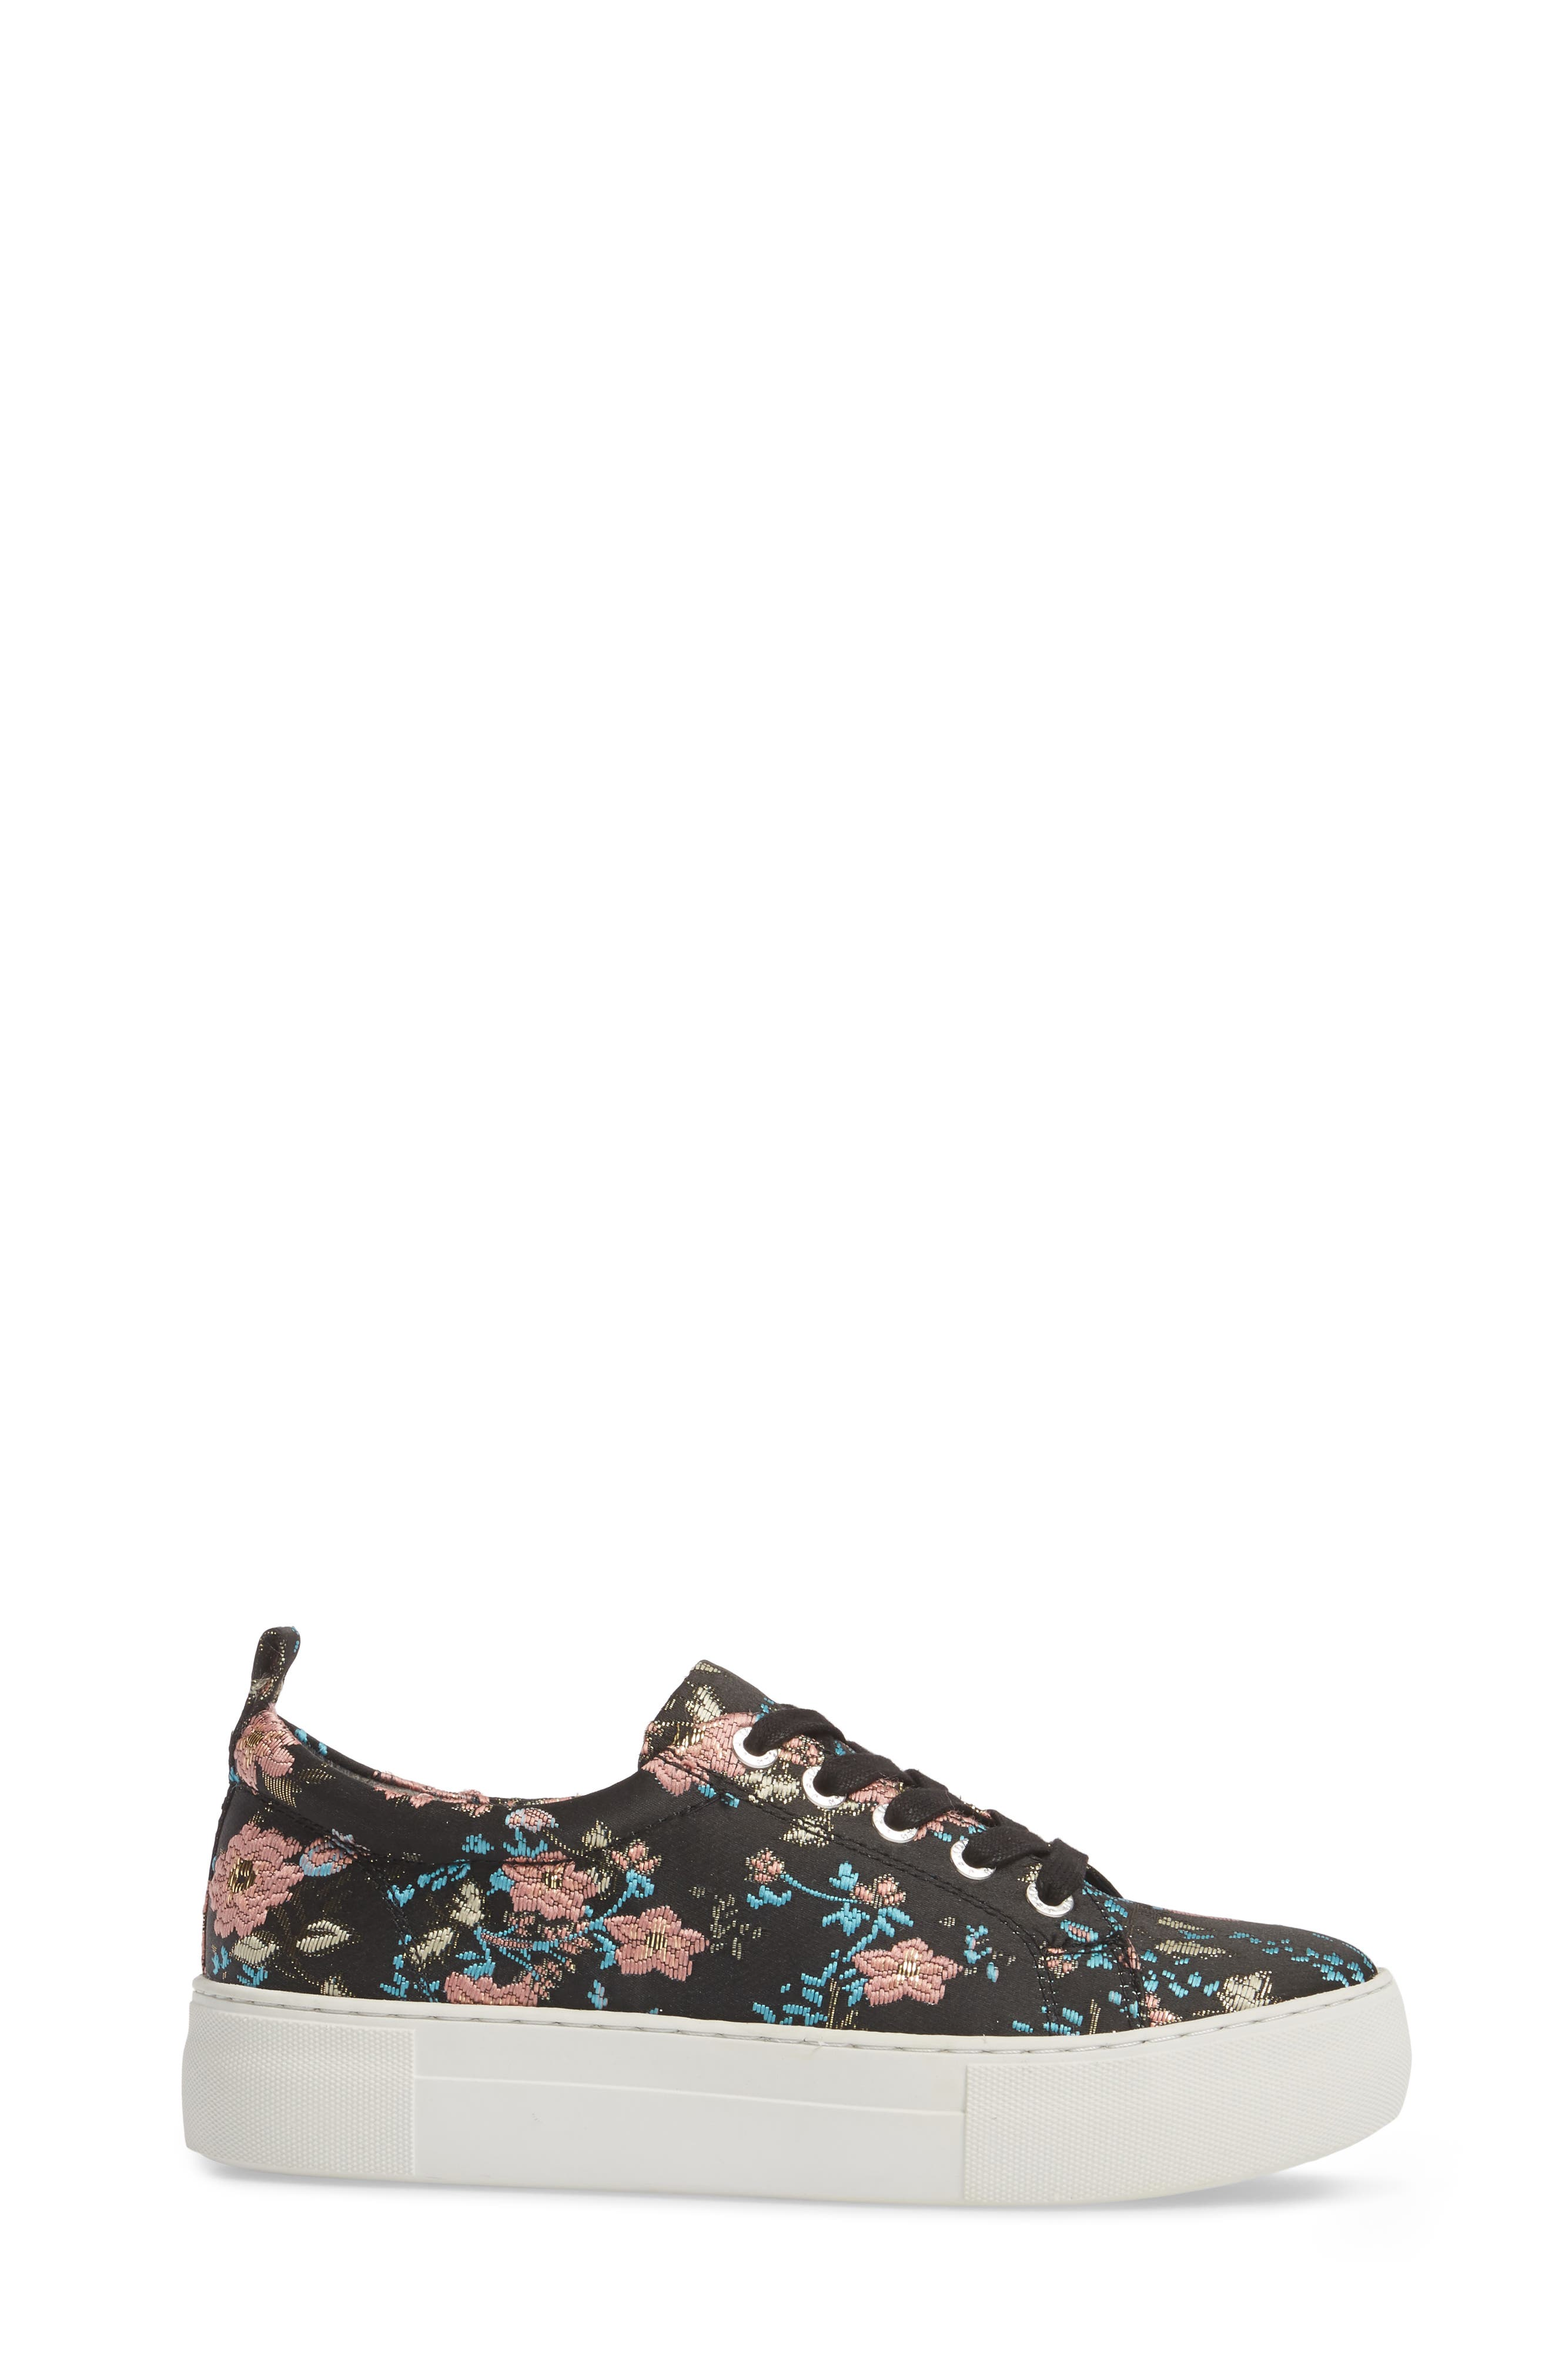 Assure Embroidered Platform Sneaker,                             Alternate thumbnail 3, color,                             Black Printed Fabric